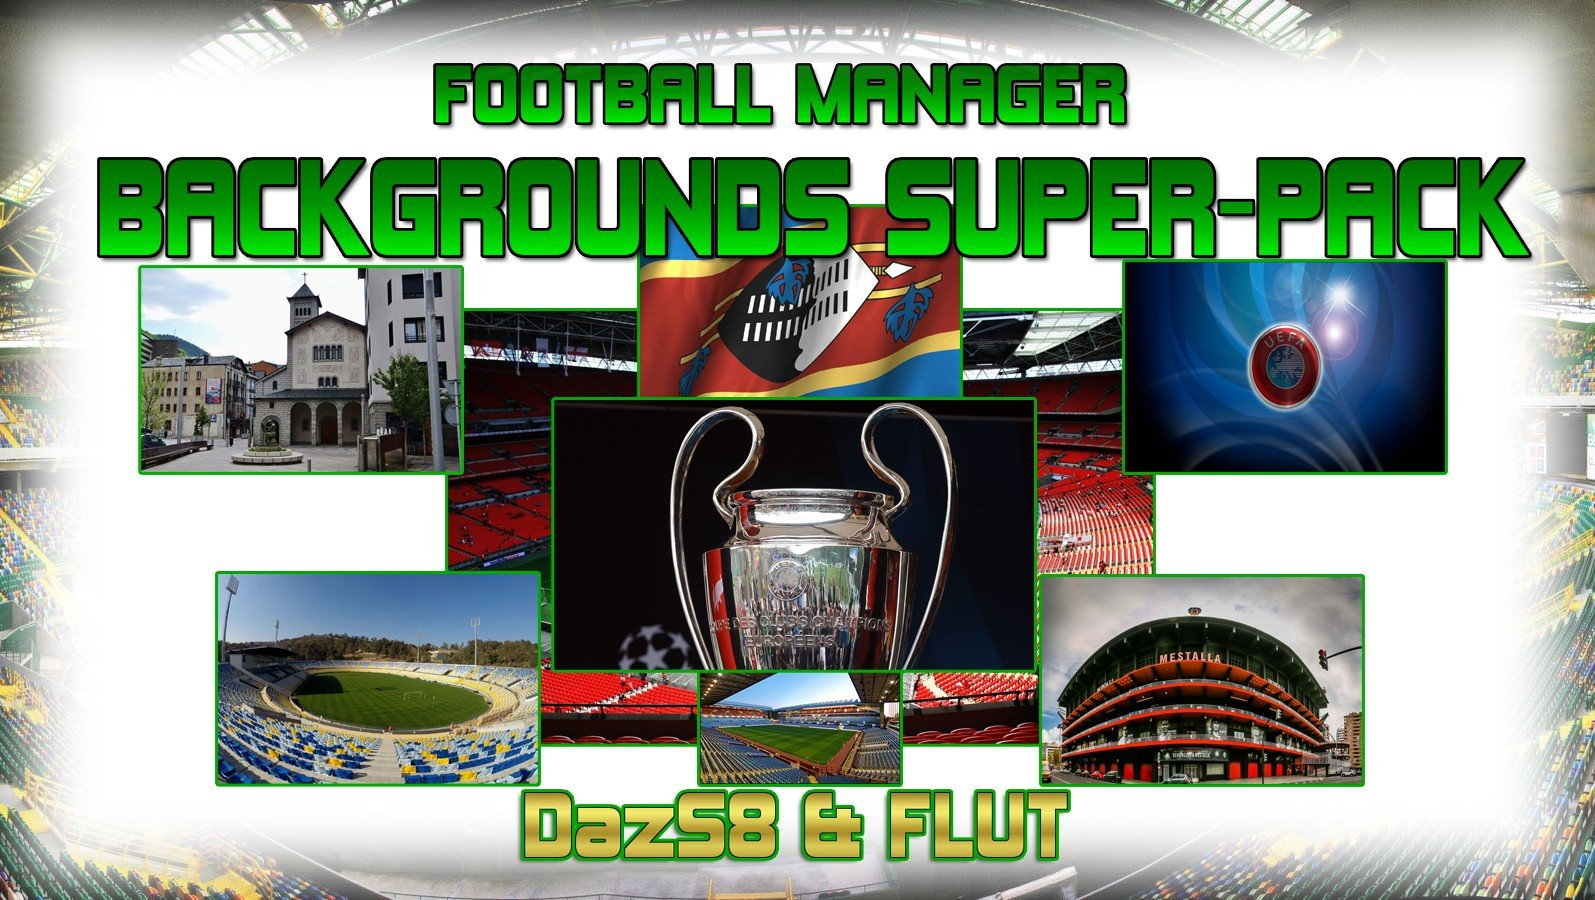 Backgrounds Super Pack (FM2016) 3NEWD